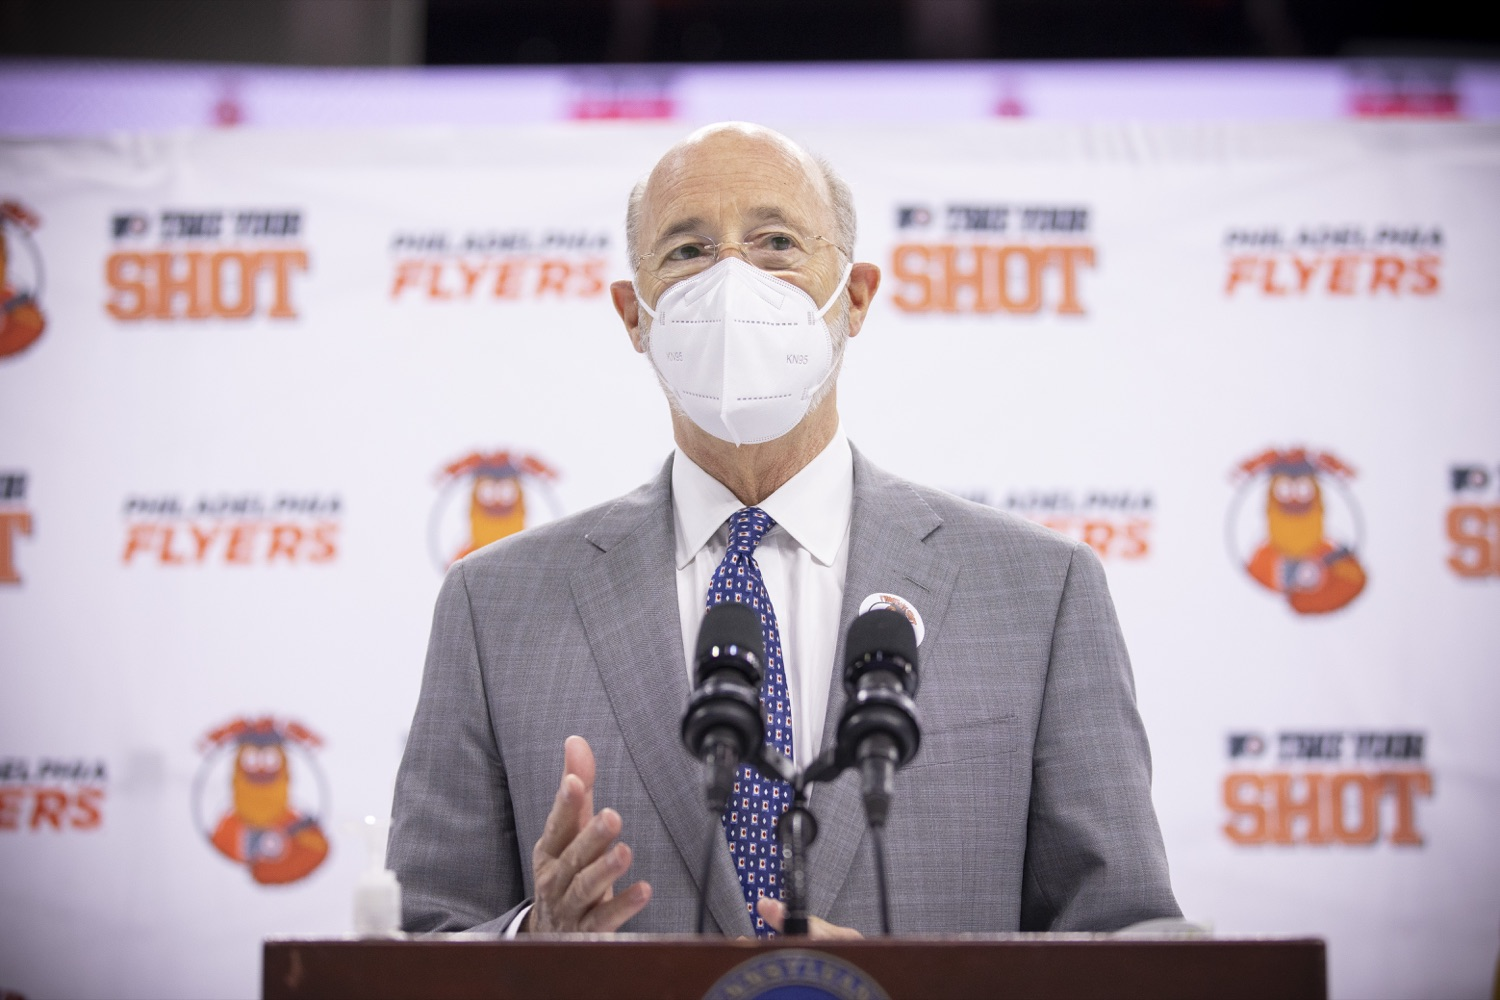 "<a href=""https://filesource.wostreaming.net/commonwealthofpa/photo/18727_gov_vaccines_dz_017.jpg"" target=""_blank"">⇣ Download Photo<br></a>Pennsylvania Governor Tom Wolf speaking with the press.   Governor Tom Wolf today visited the Philadelphia Flyers organization at the Wells Fargo Center in Philadelphia to discuss COVID-19 vaccine efforts in Pennsylvania. The Flyers recently launched a comprehensive COVID-19 vaccine campaign, Take Your Shot, encouraging Pennsylvanians to get vaccinated.  Philadelphia, PA  MAY 3, 2021"